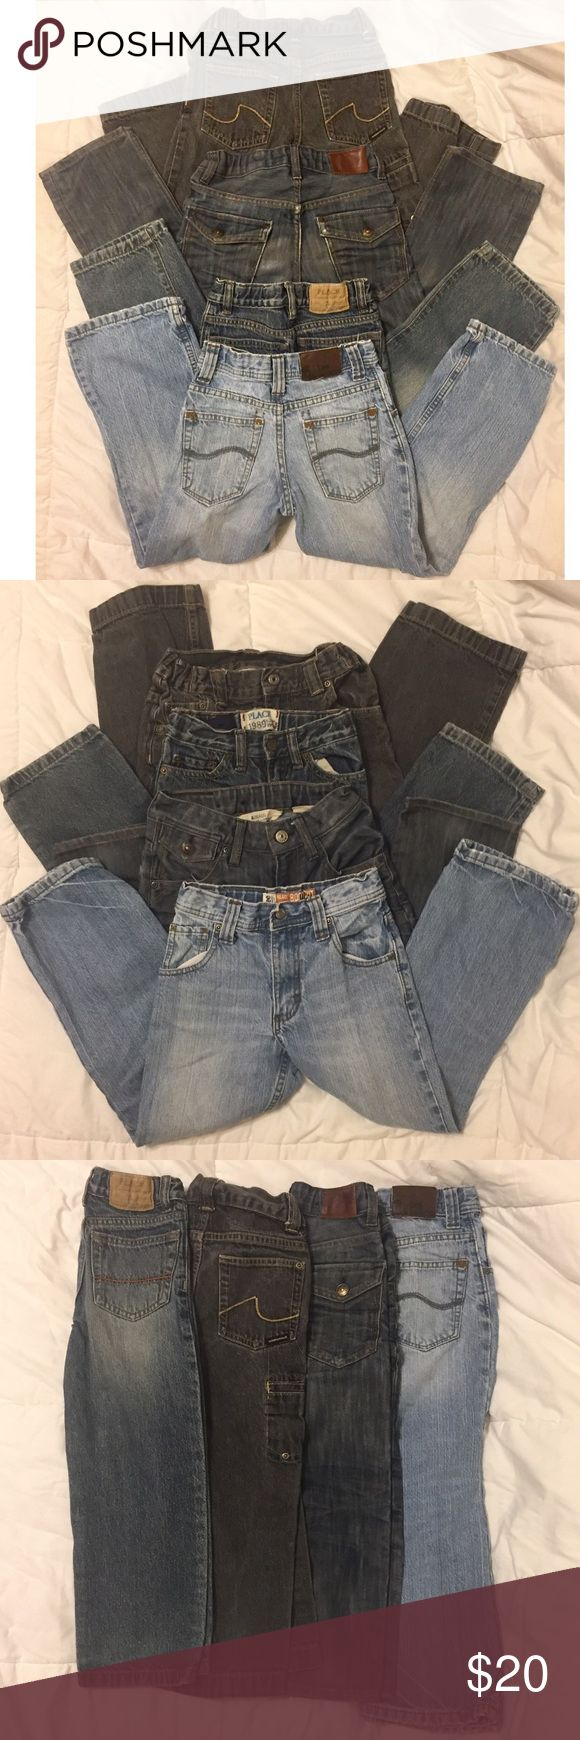 4 pairs of Boys Jeans size 5 4 Pairs of Boys Jeans  Good used condition. Normal wear from wash.  Adjustable waist on all.  1- The children's place classic Sz 5S 2- Lee dungarees  Relaxed boot cut w/ Tag worn out but same sz as 5/6 light stain on 1 knee. 3- Bragg Waist: regular Leg: straight Size: 5/6 Y Wash: sandblasted wash/ worn weathered look    4- Sideout  Grey black jeans tag not on jeans but the same length as a Sz a 5  Free pair sz 5S fromTCP, fraying at the knees & hem. Questions?…